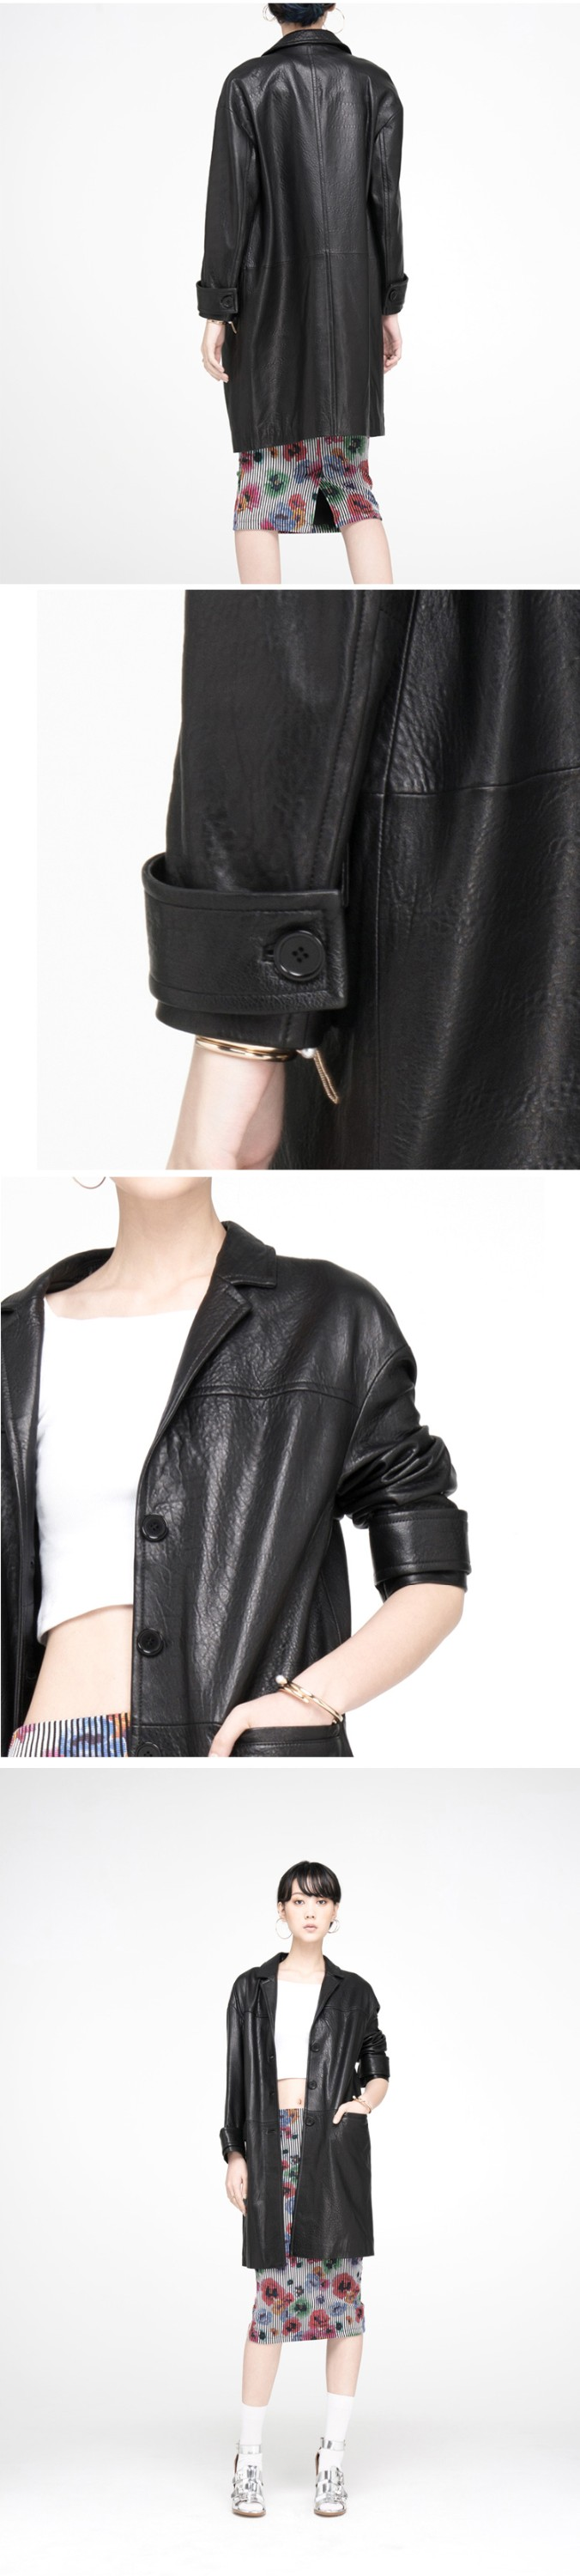 YEEL New Design europe luxurious grace notch collar long design women leather coat with buttons